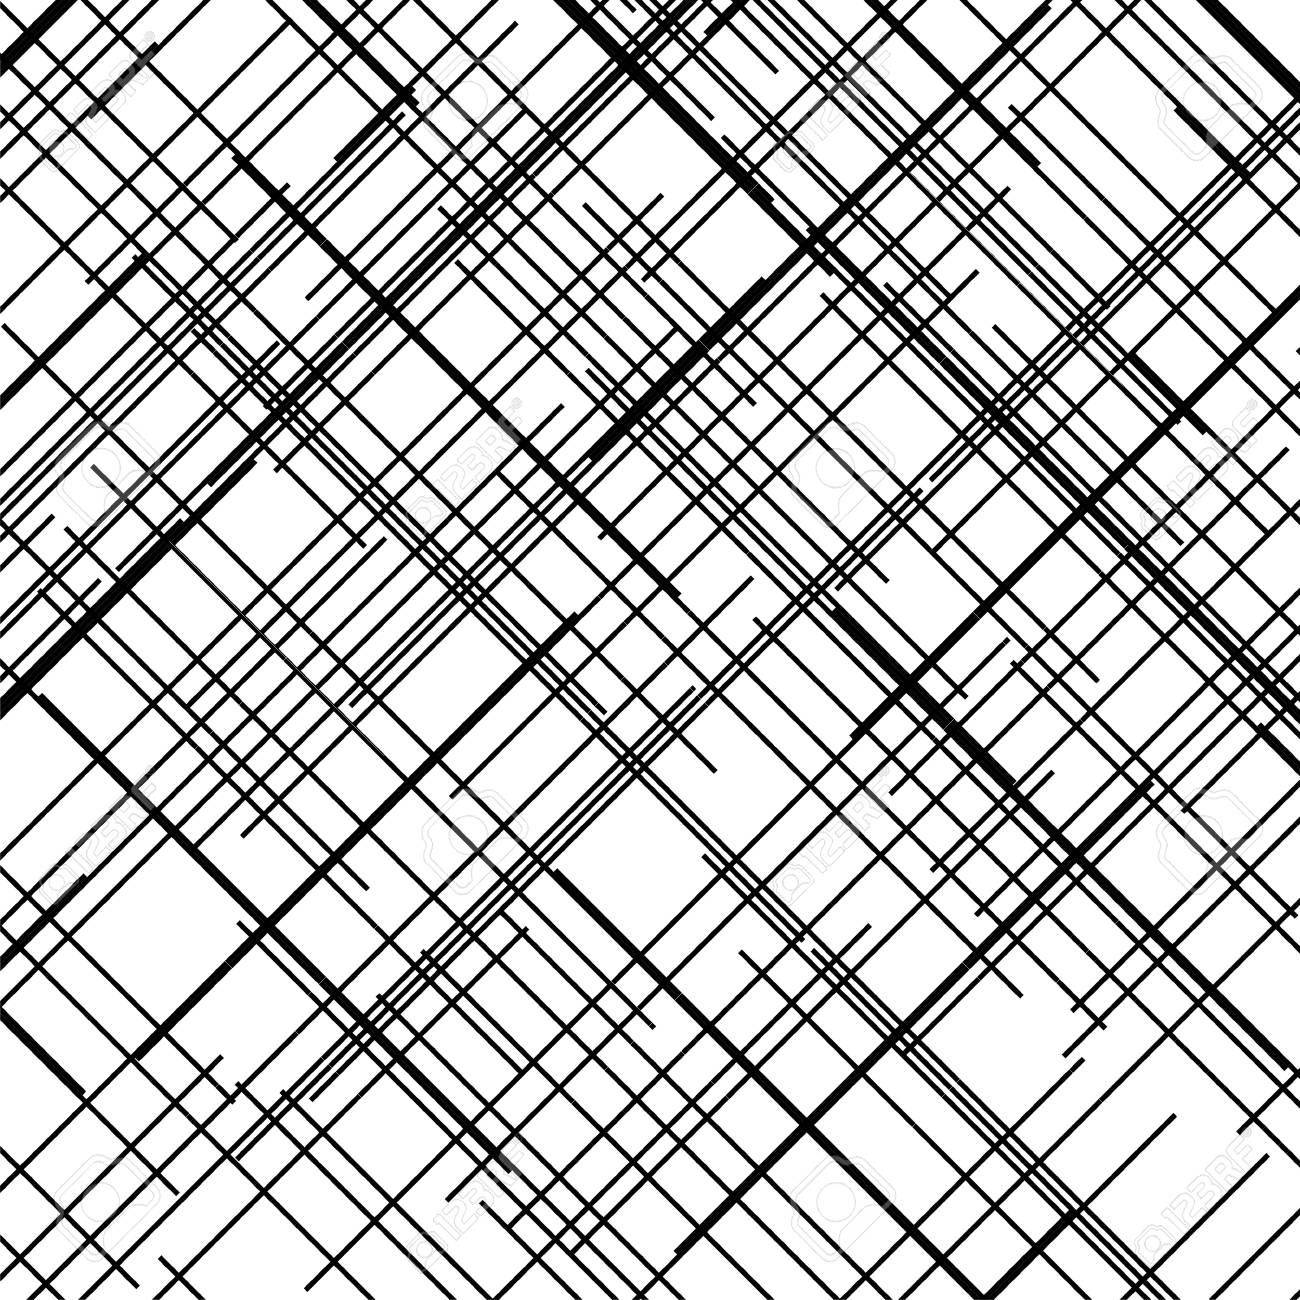 Criss Cross Pattern Texture With Intersecting Straight Lines